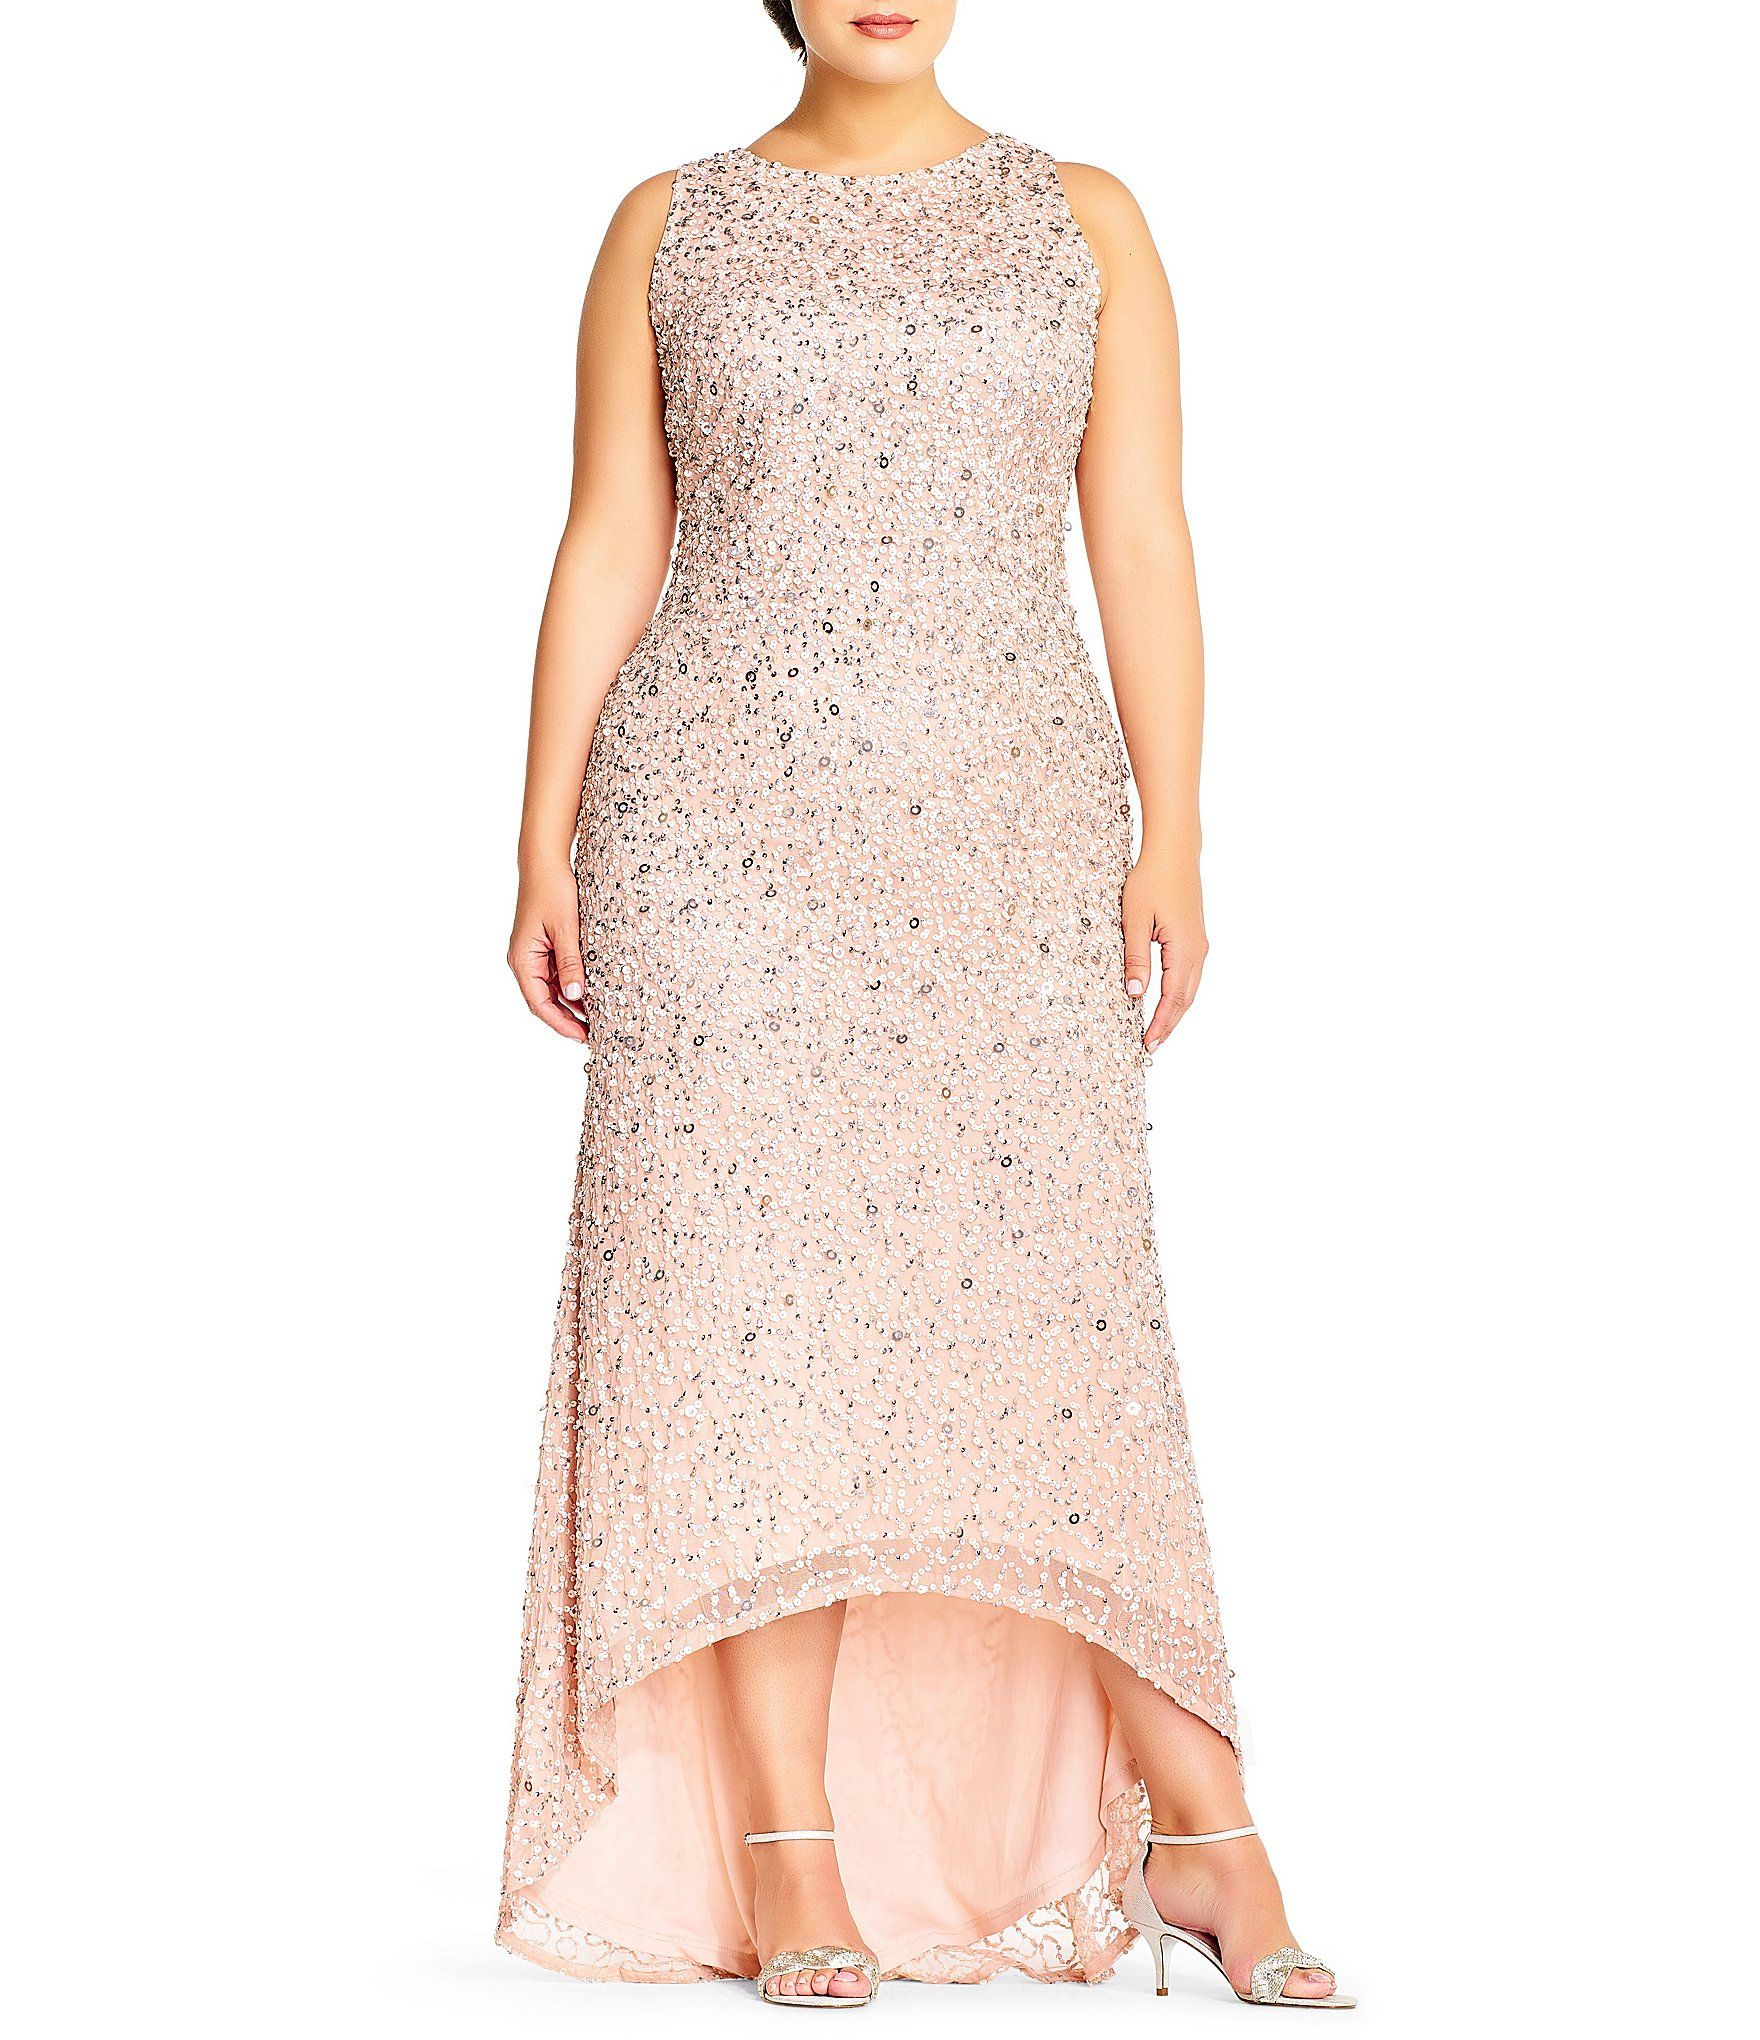 Adrianna Papell Plus Size Halter Hi-low Beaded Gown | Adrianna ...